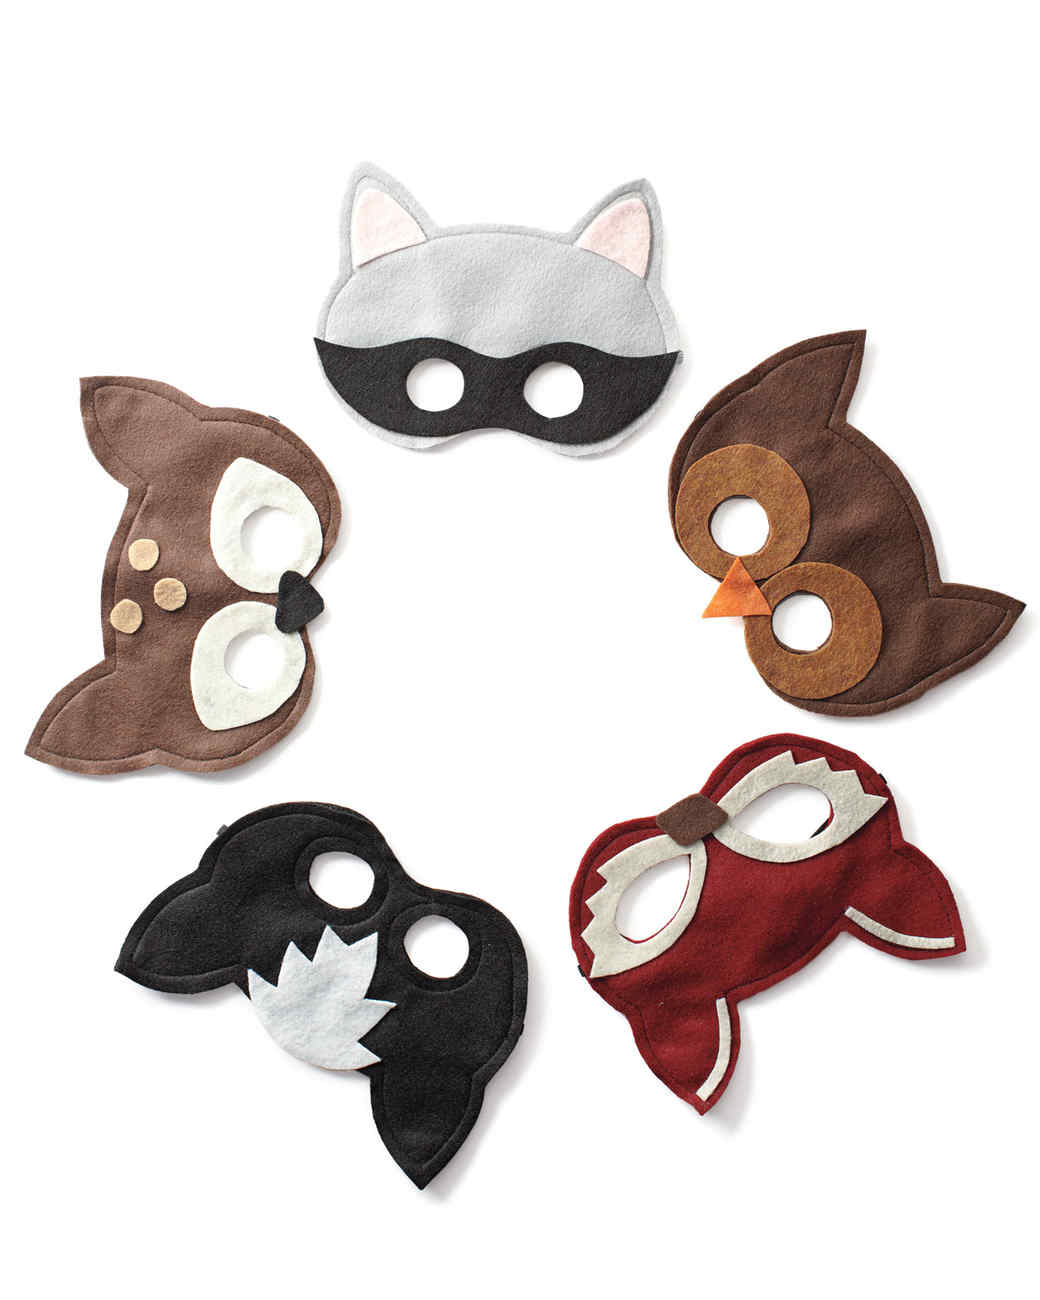 masks-md108096.jpg